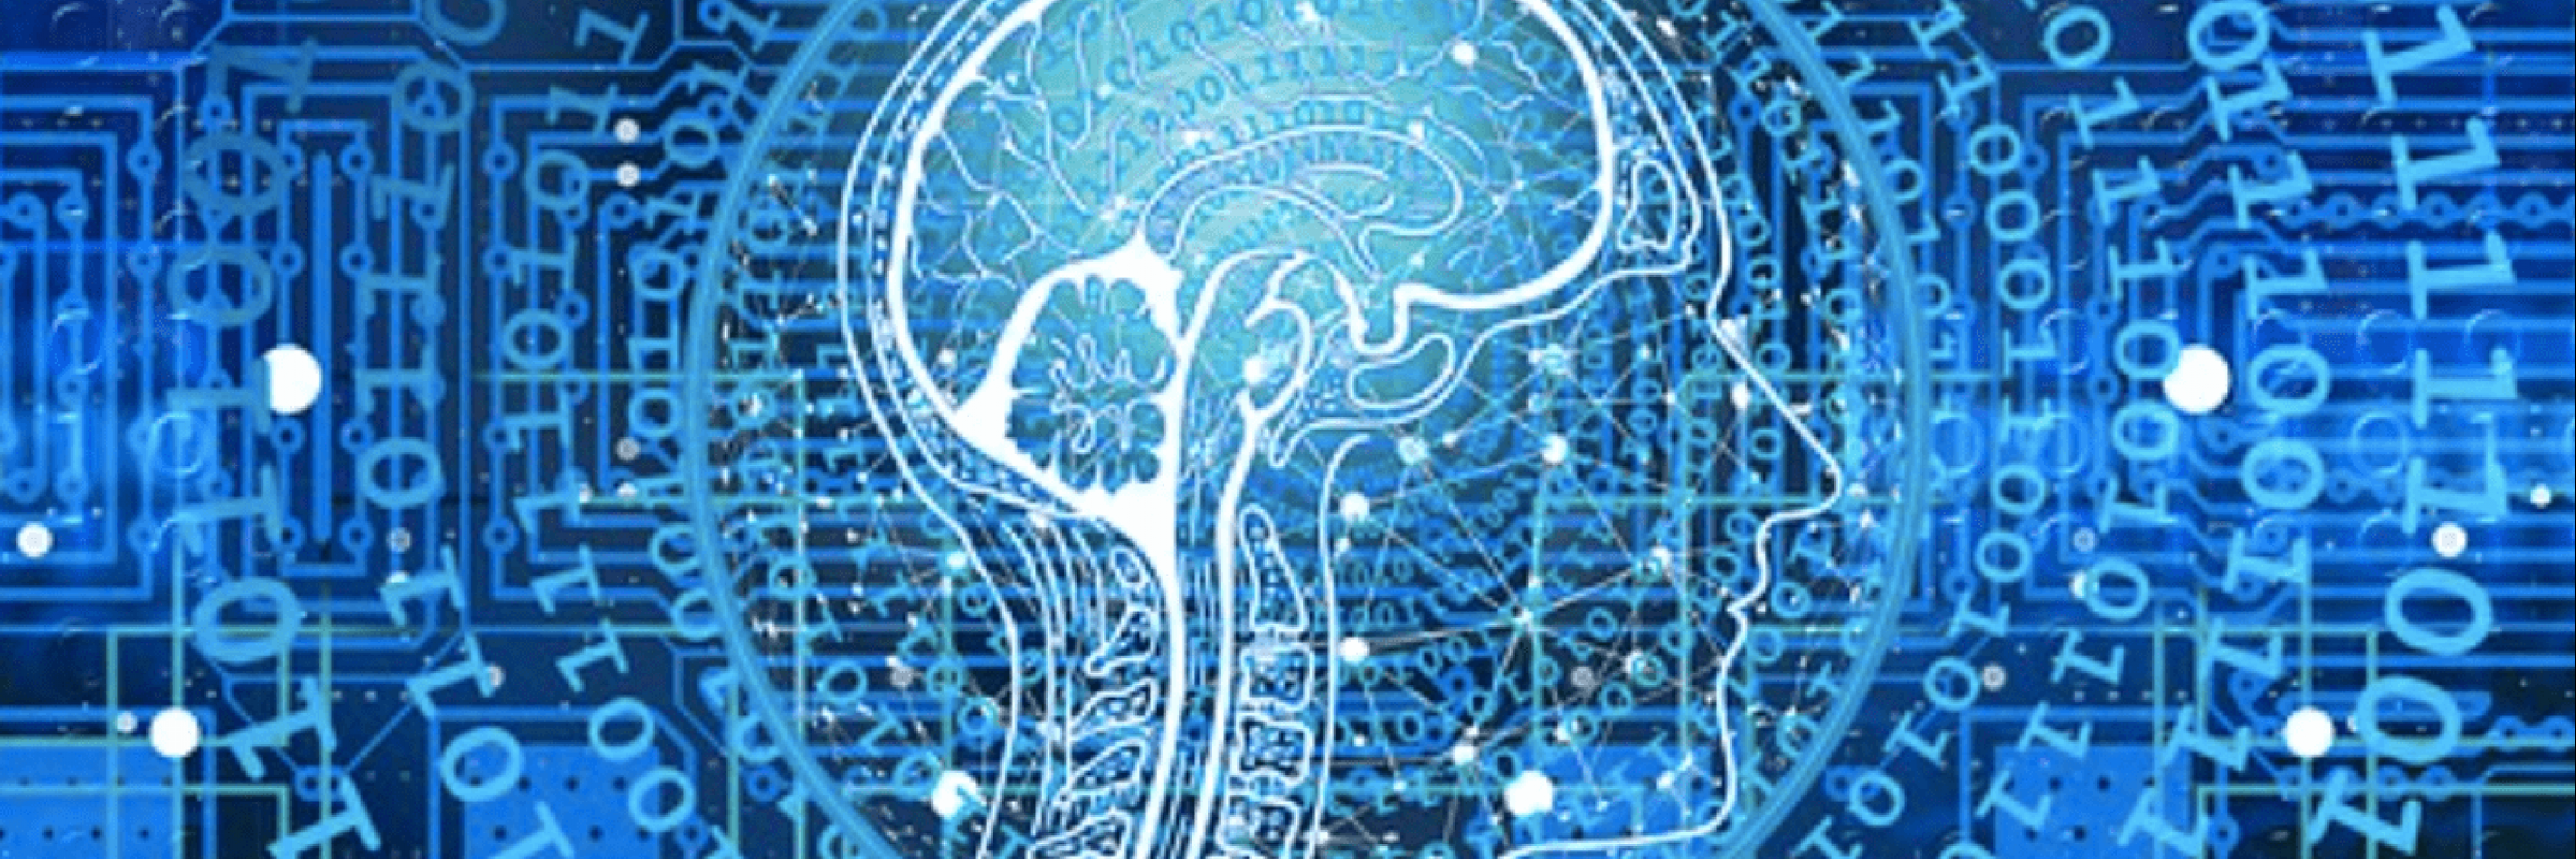 Can Neuroscience Understand Free Will?